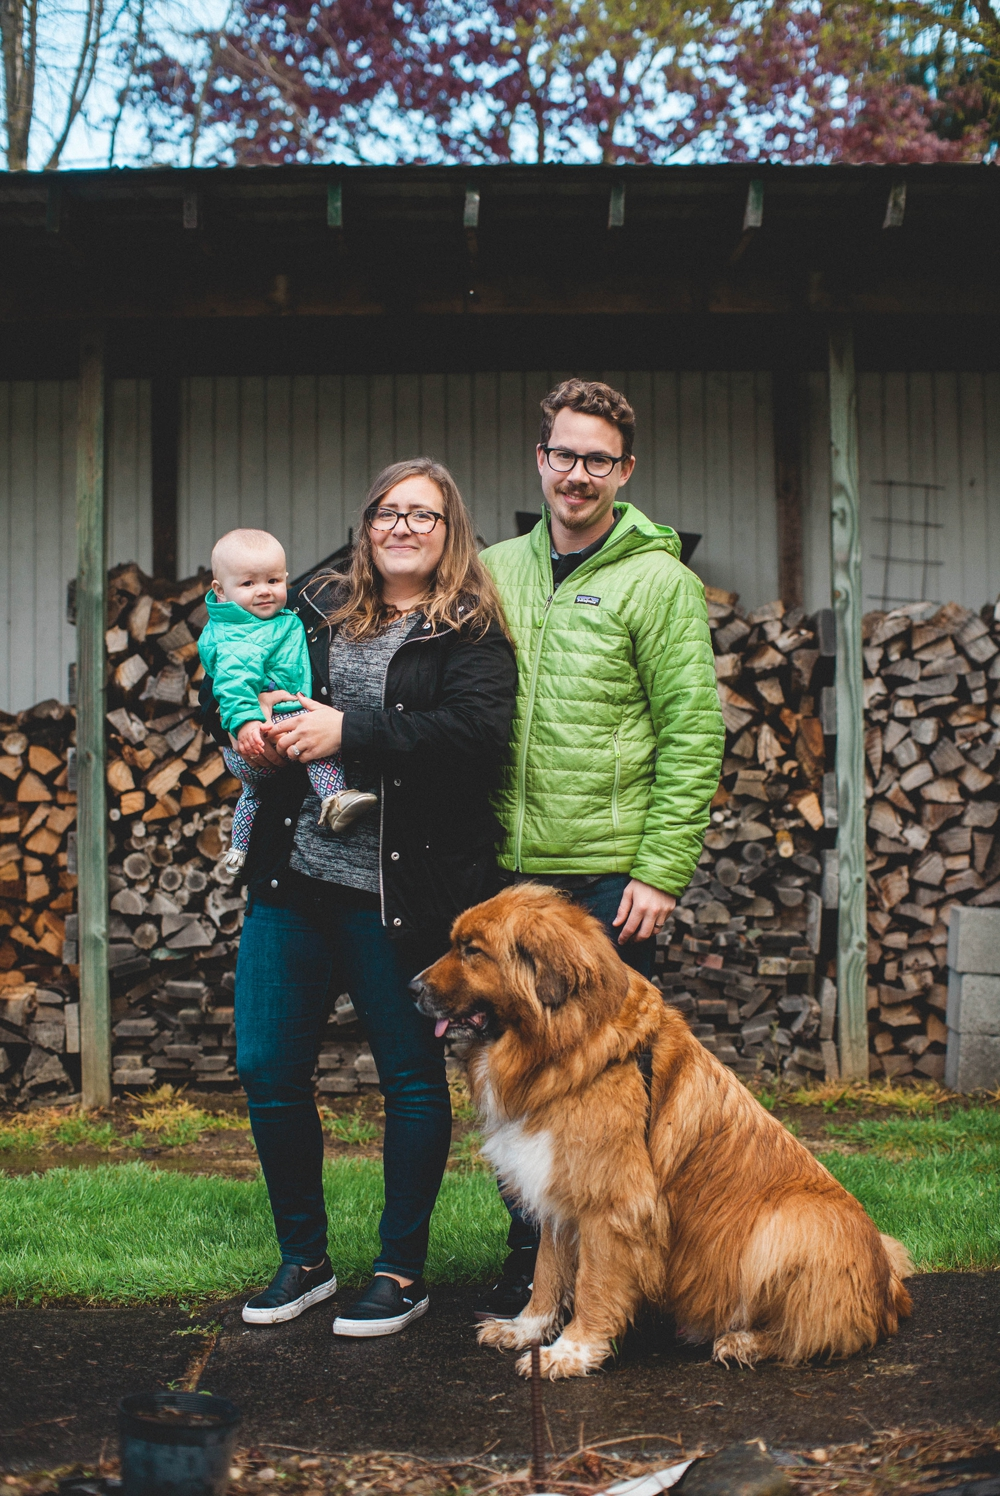 enumclaw_farm_lifestyle_family_rain_session 15.jpg